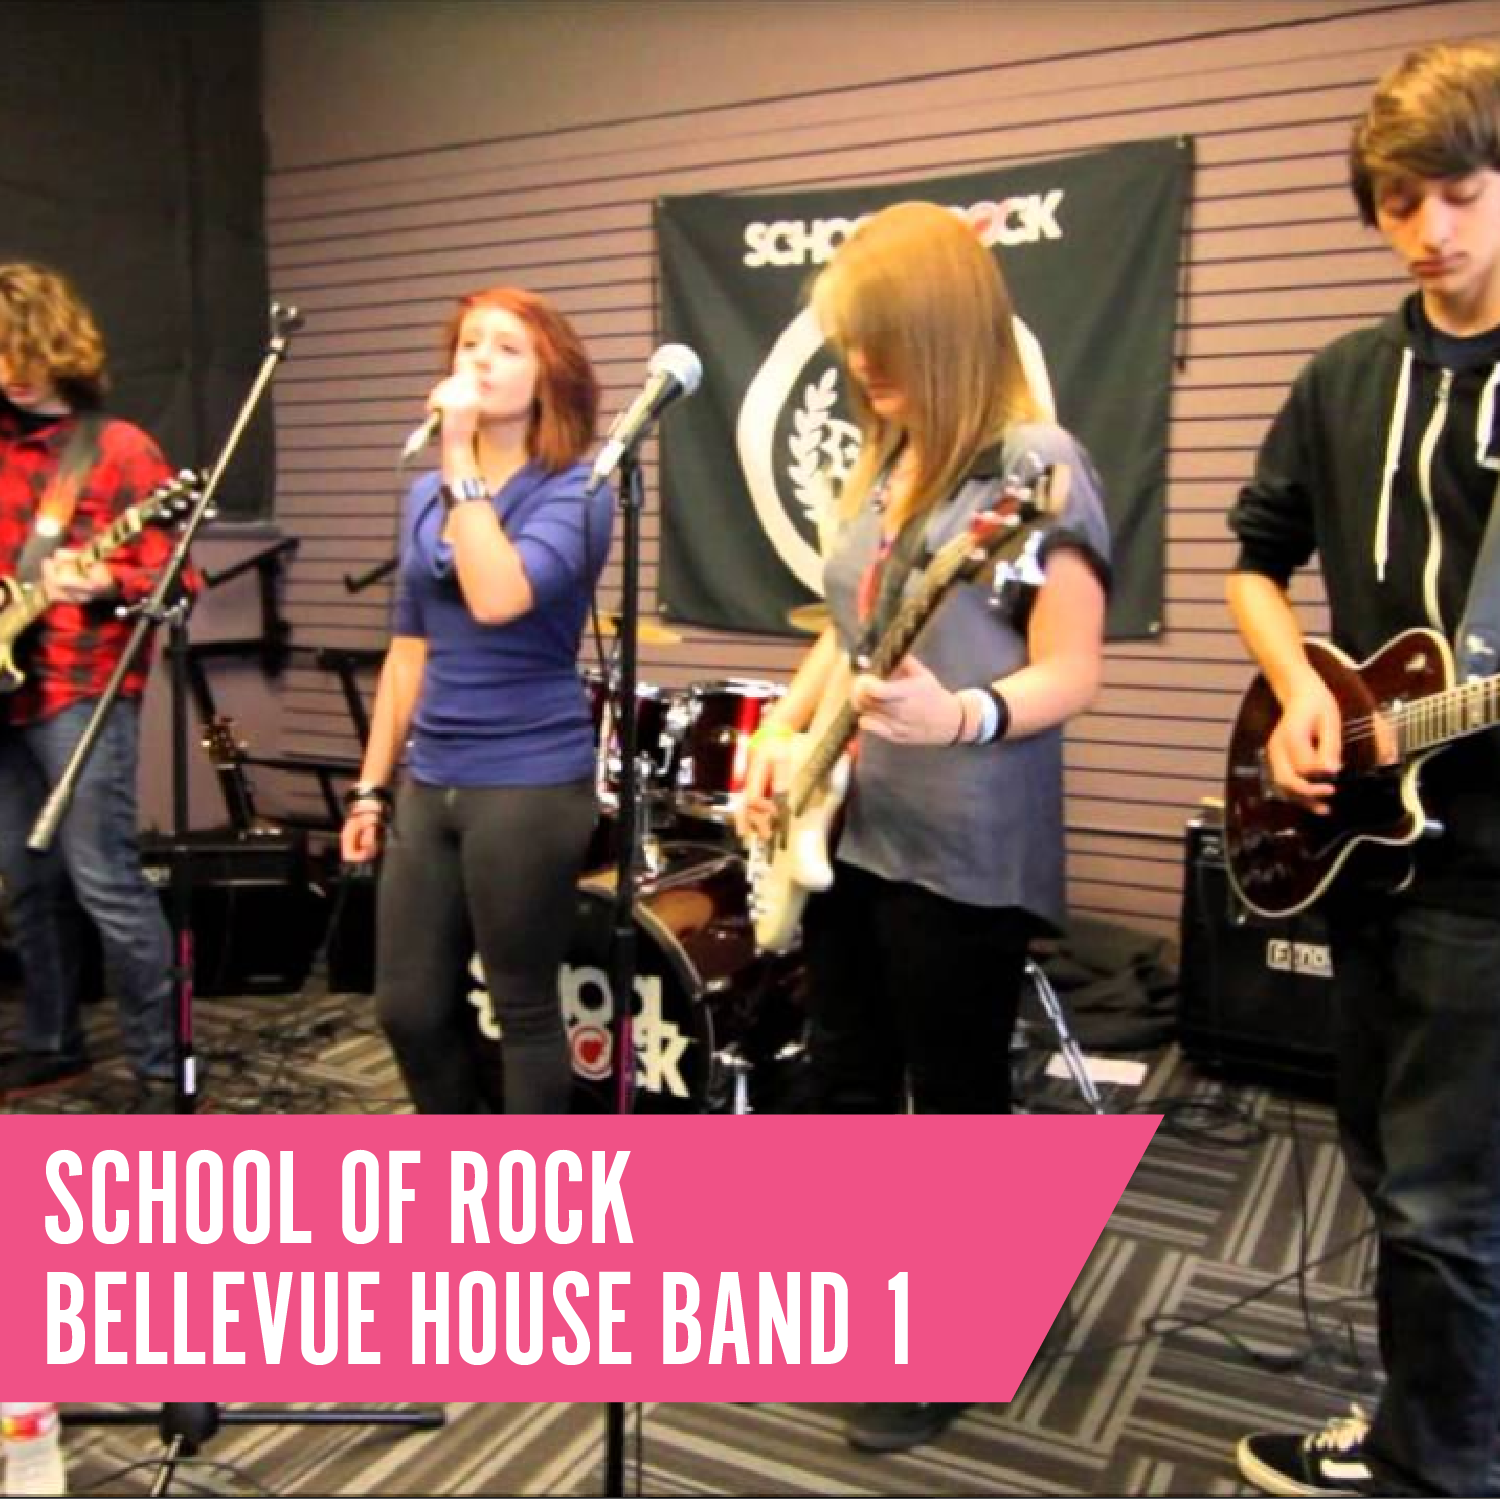 SCHOOL OF ROCK HOUSE BAND 1-01.png